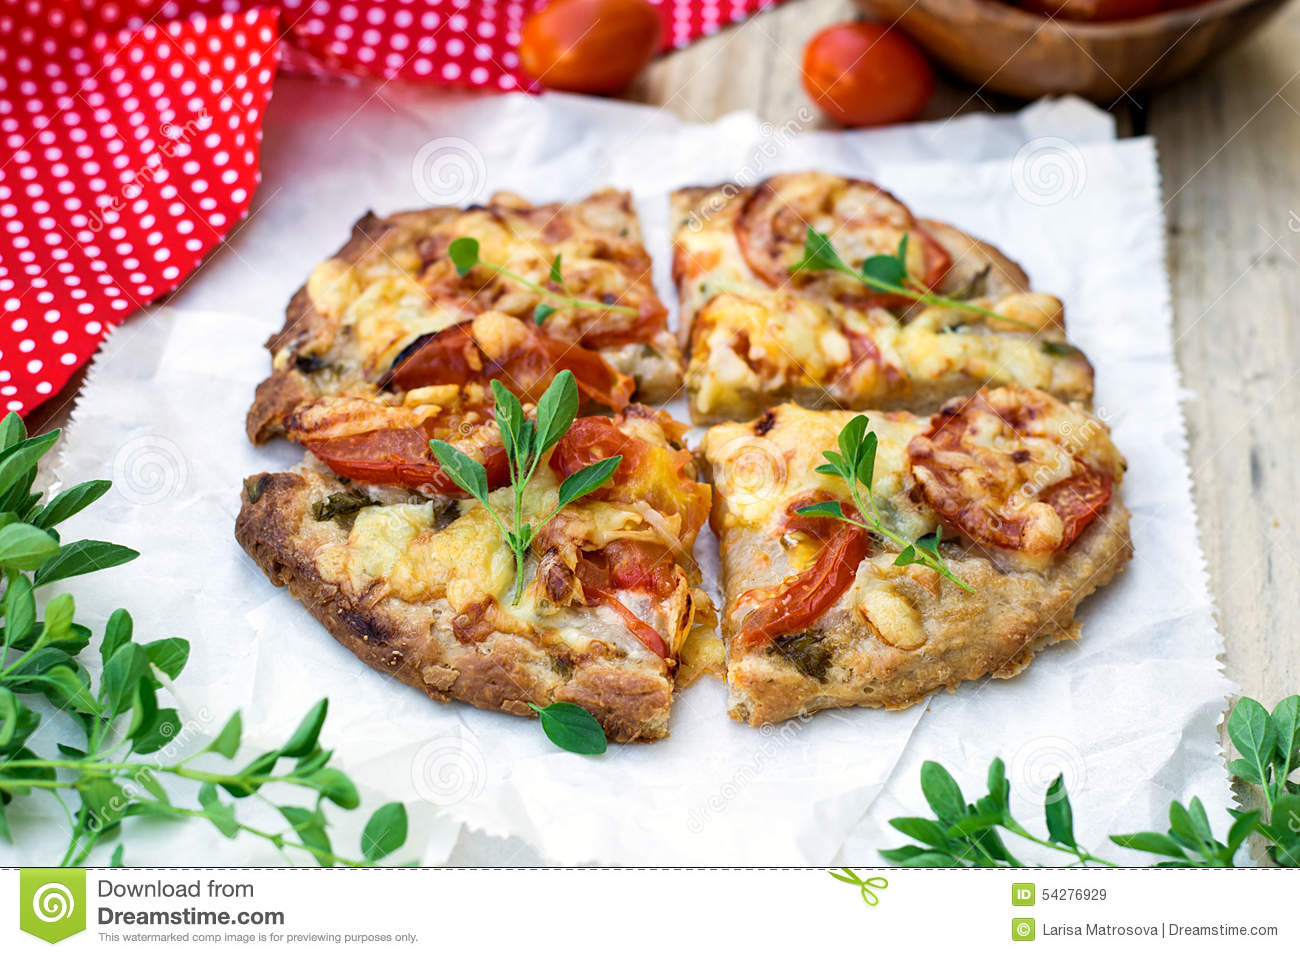 Wholewheat wholemeal pizza with tomatoes, cheese and herbs.